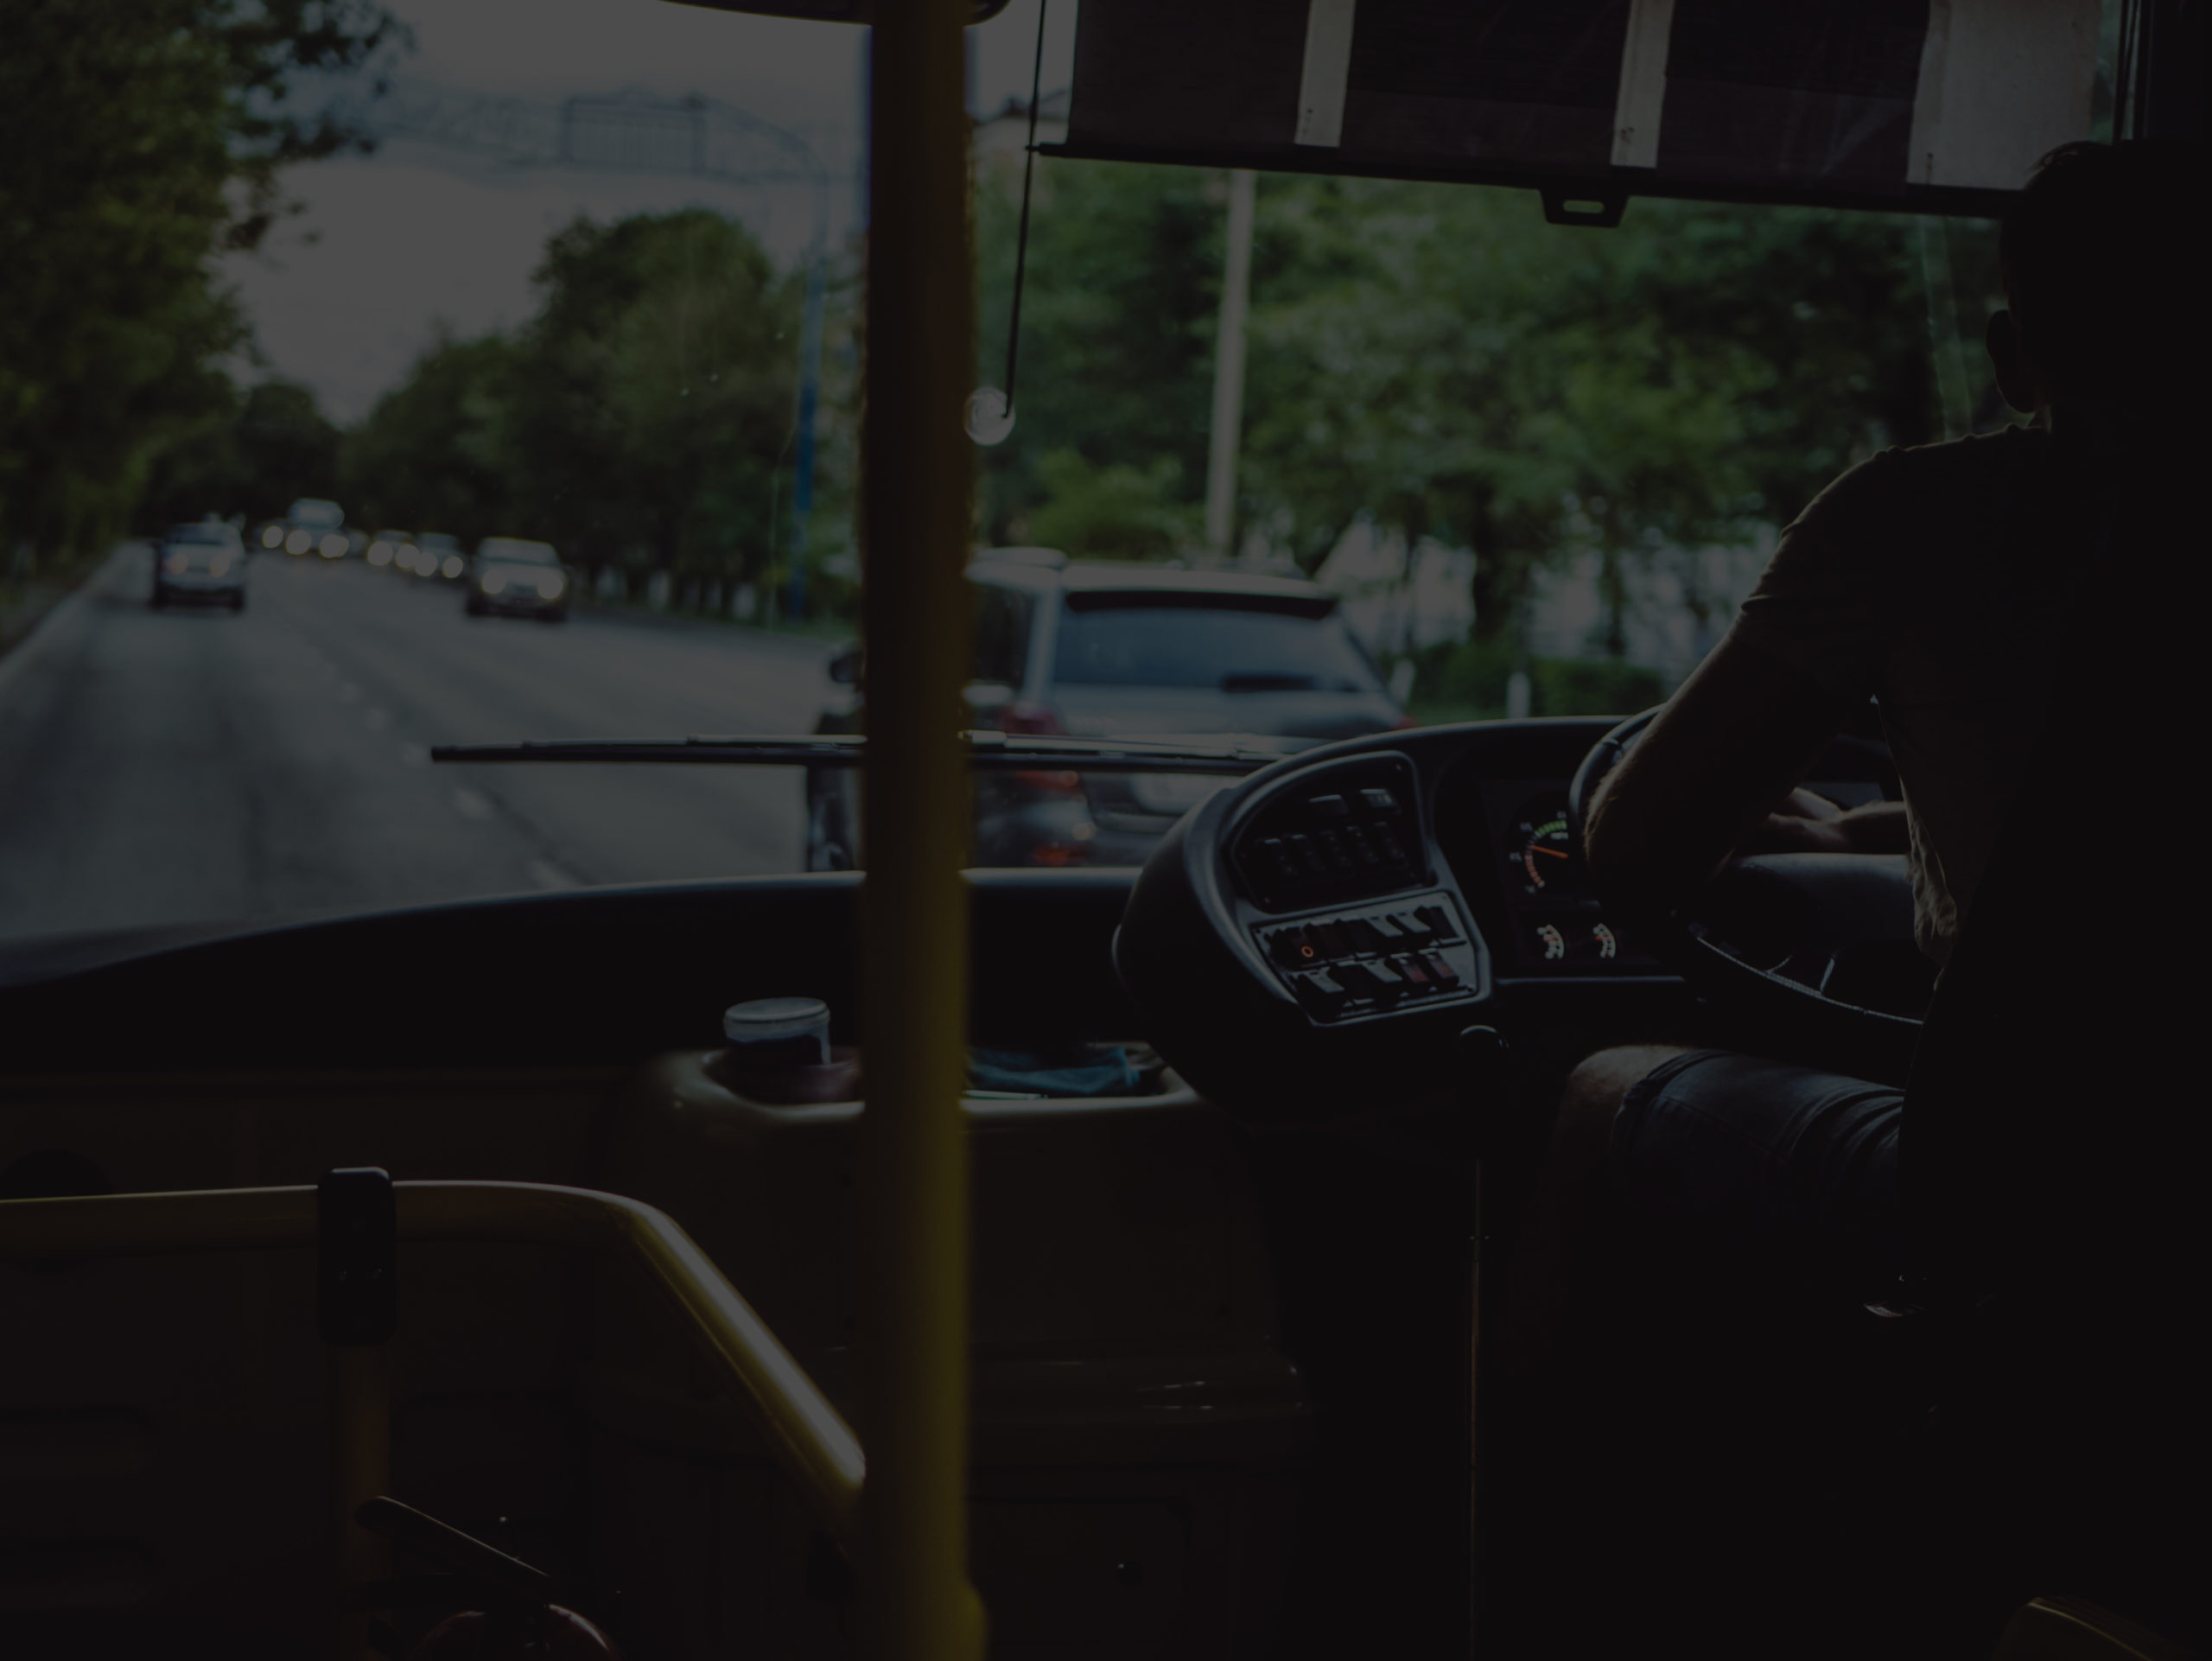 Inside of bus showing drivers cab